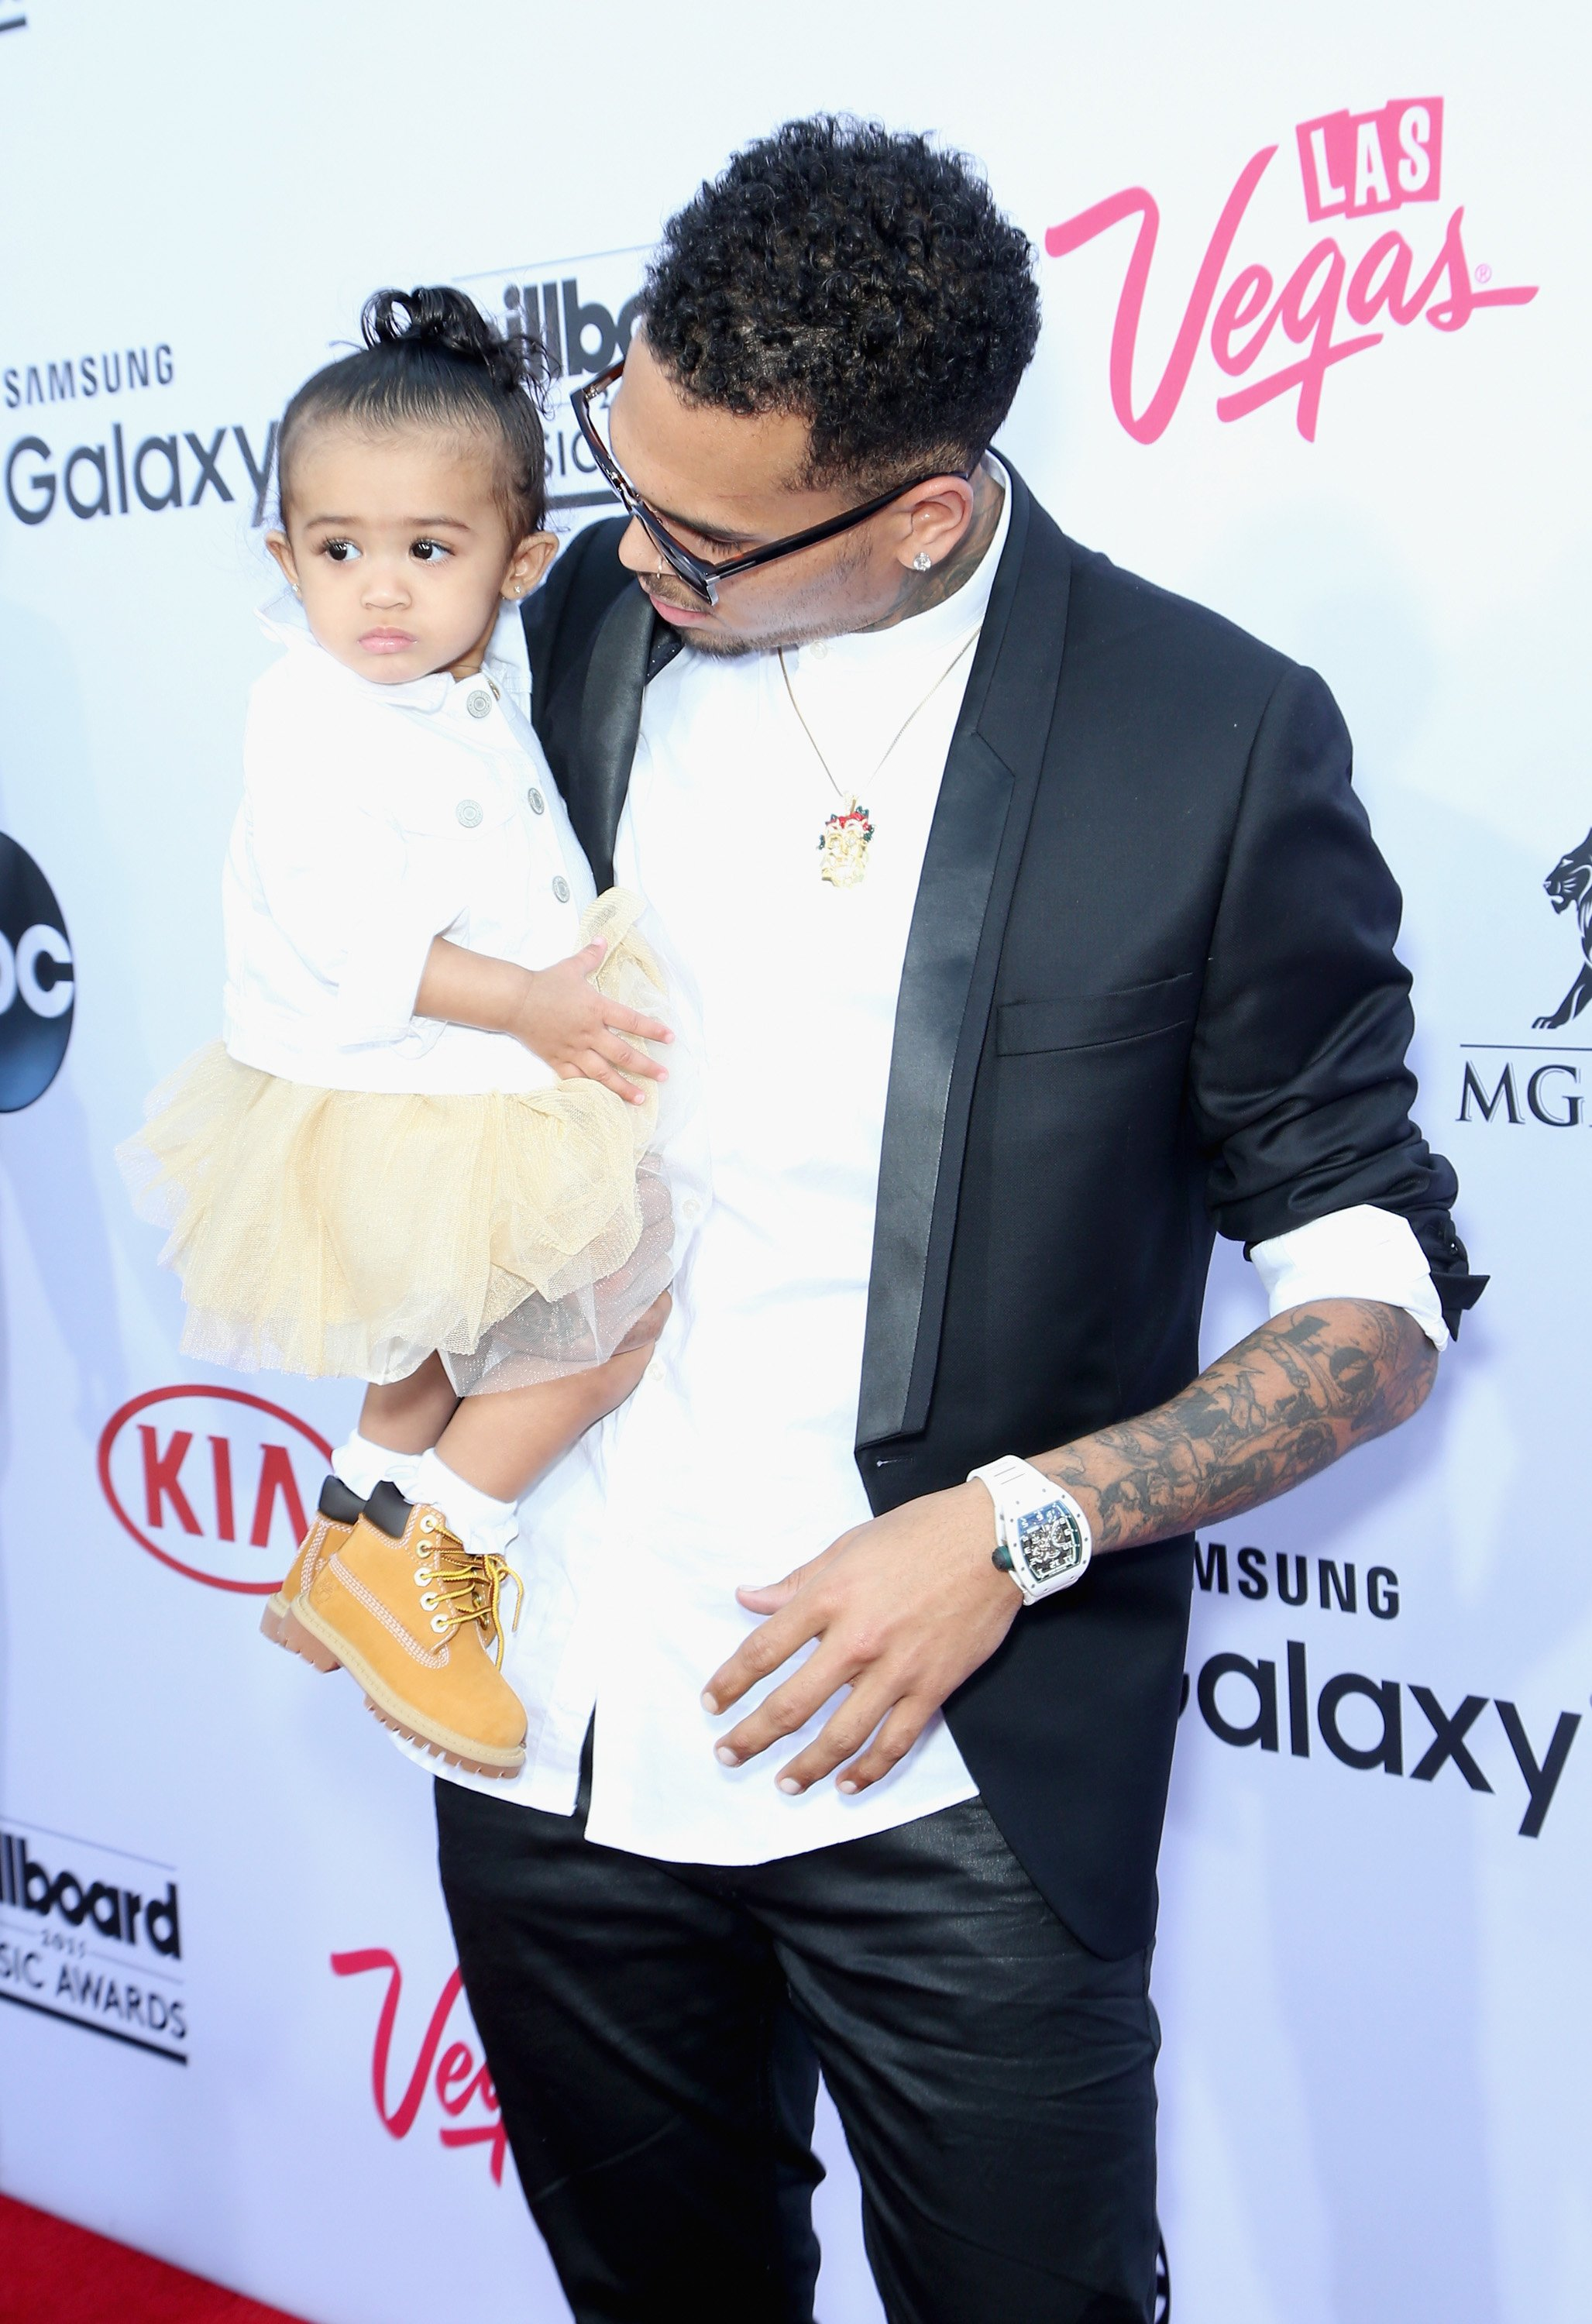 Chris Brown and his daughter Royalty at the 2015 Billboard Music Awards in Las Vegas, Nevada | Source: Getty Images